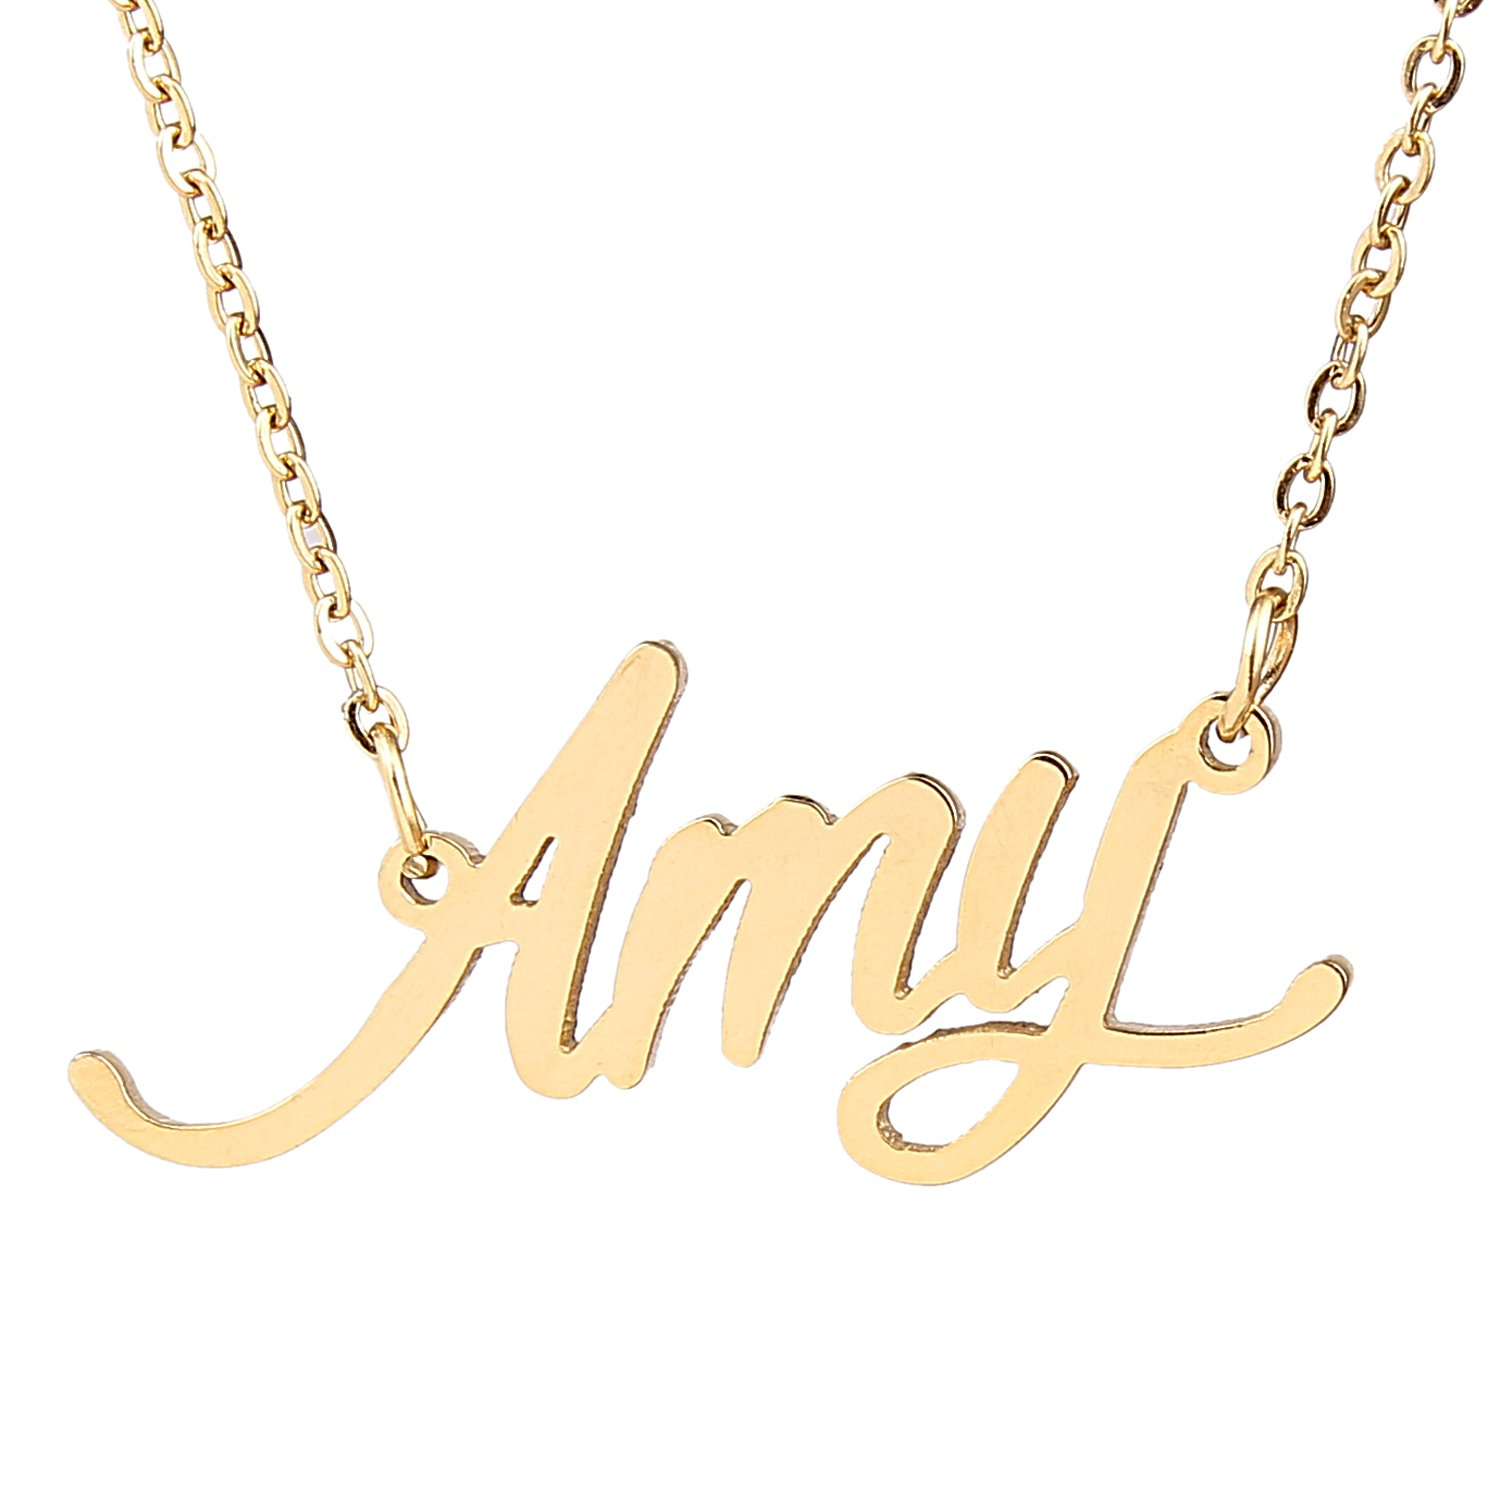 star cursive gold products d name of necklace amit wave wg pendant